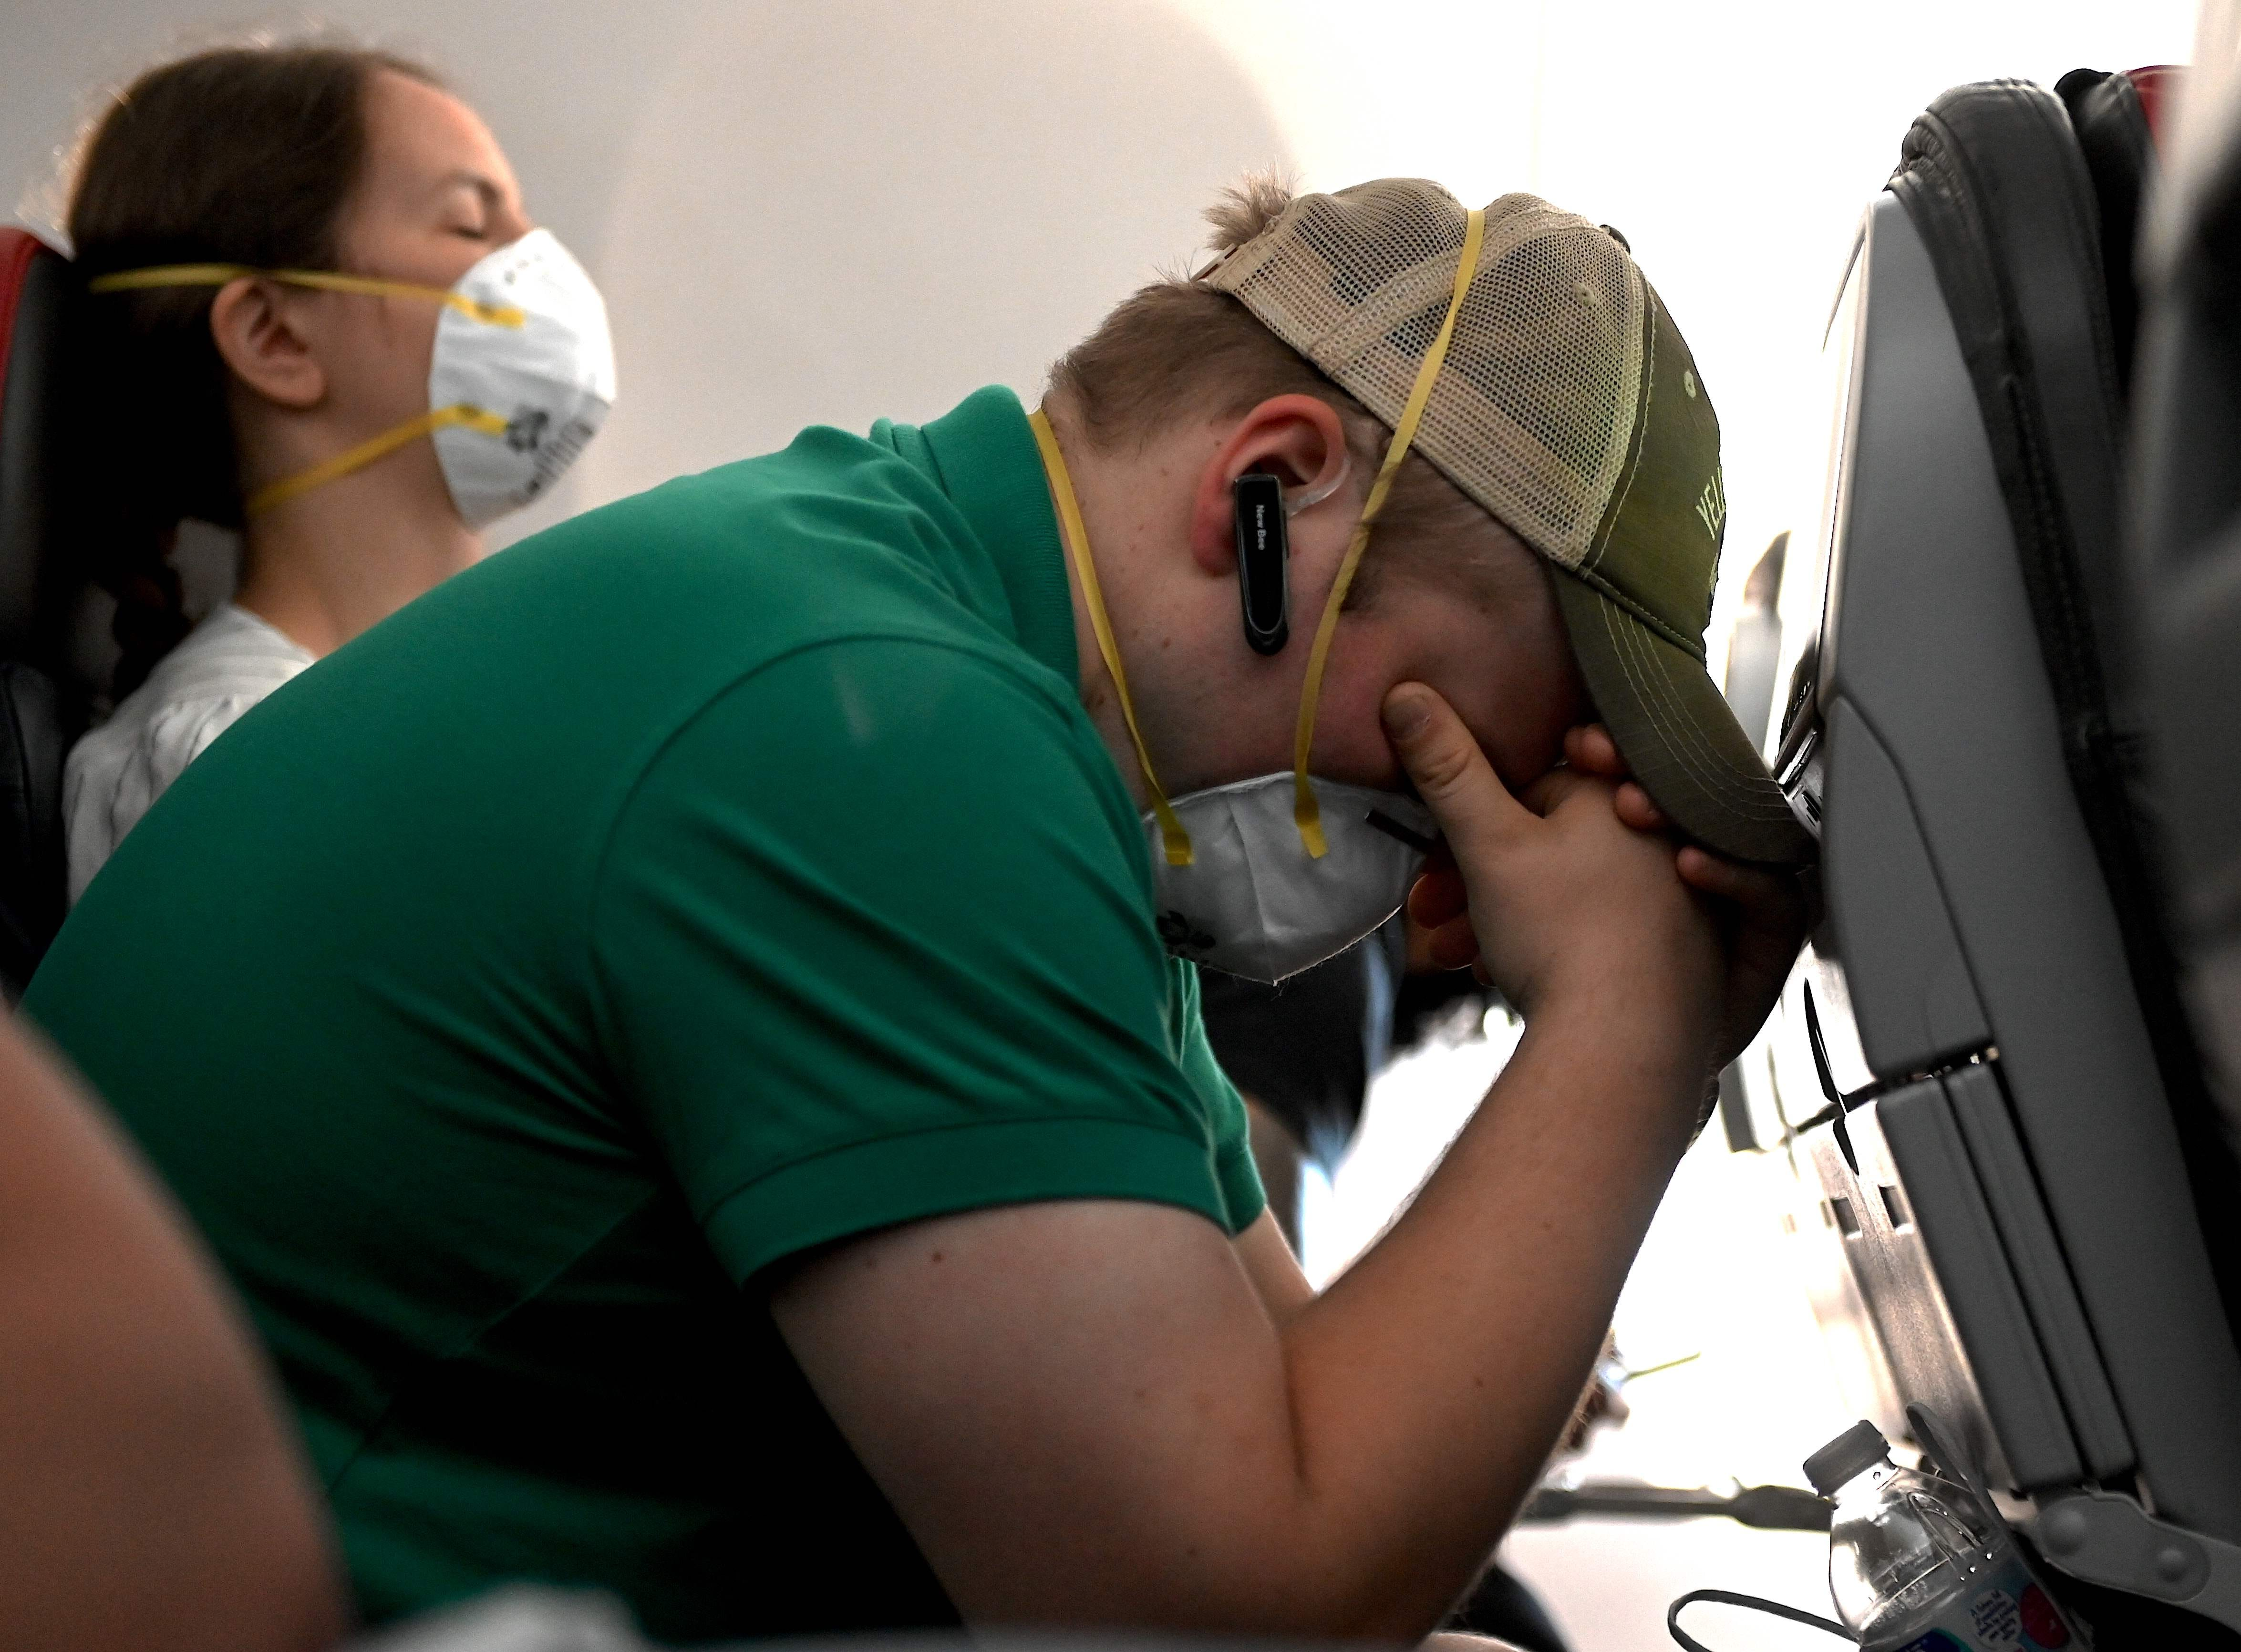 Airline passengers are finding  creative ways  to remove masks, American pilot says